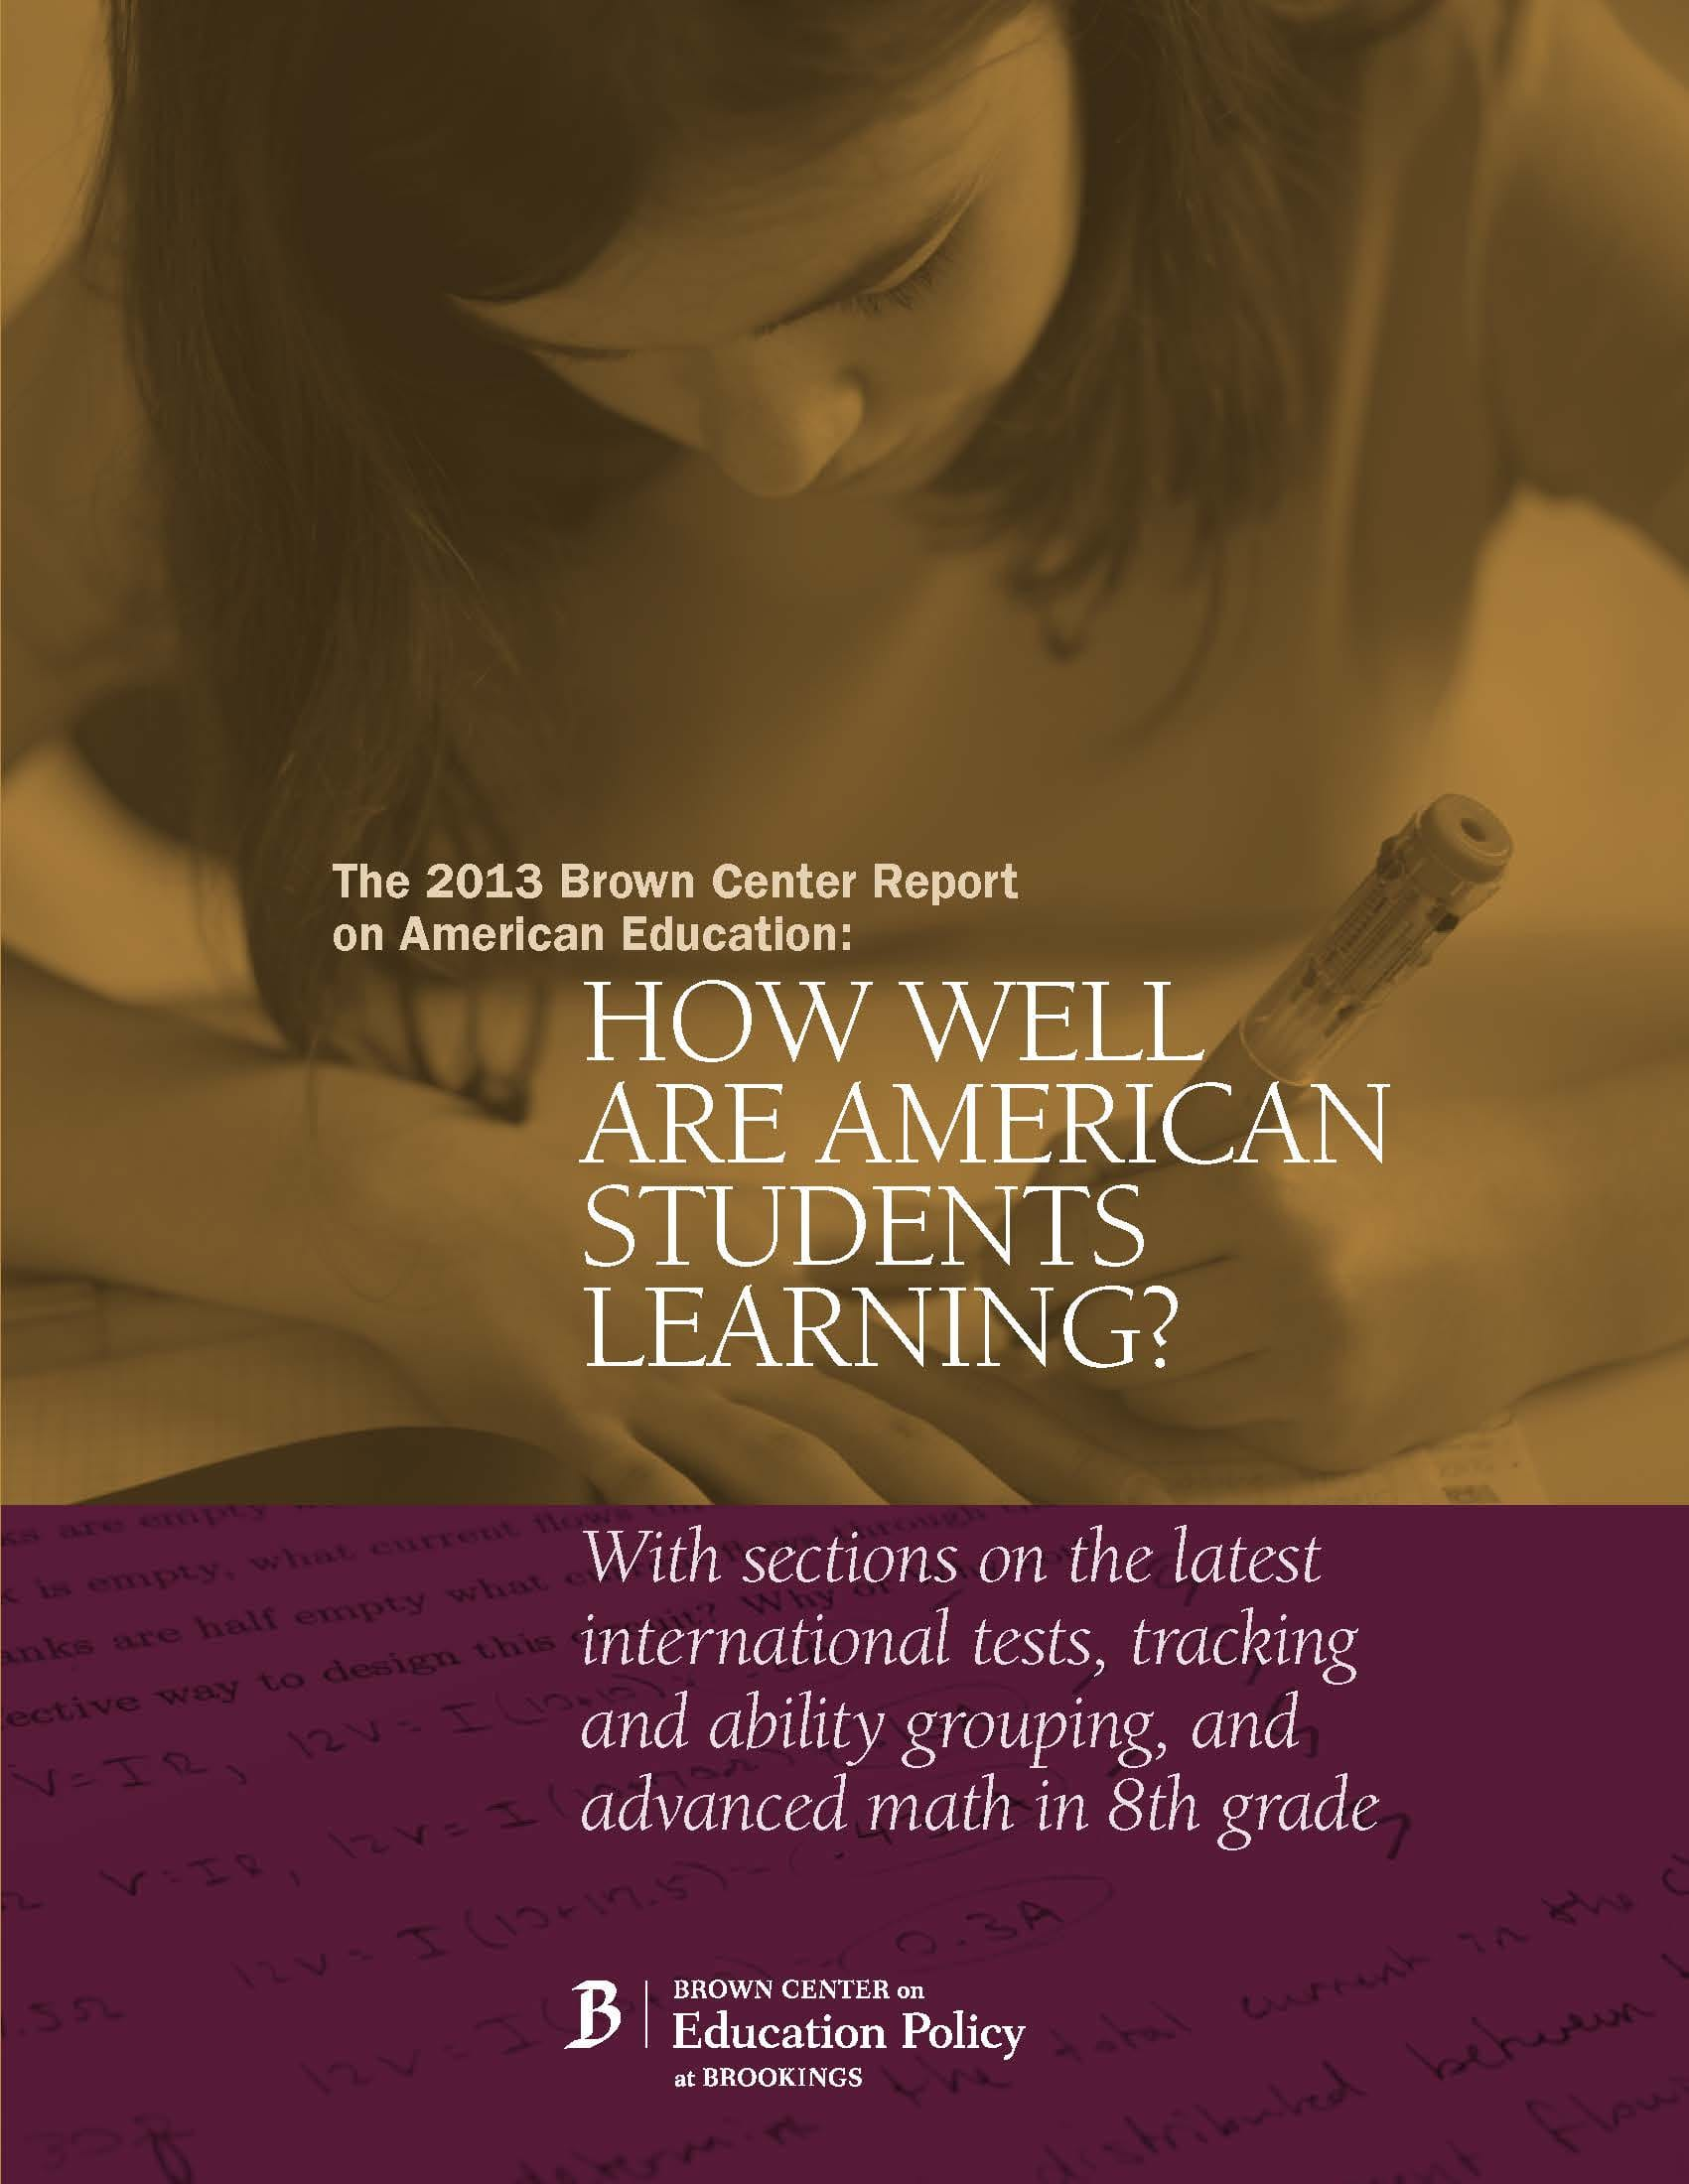 The 2013 Brown Center Report on American Education